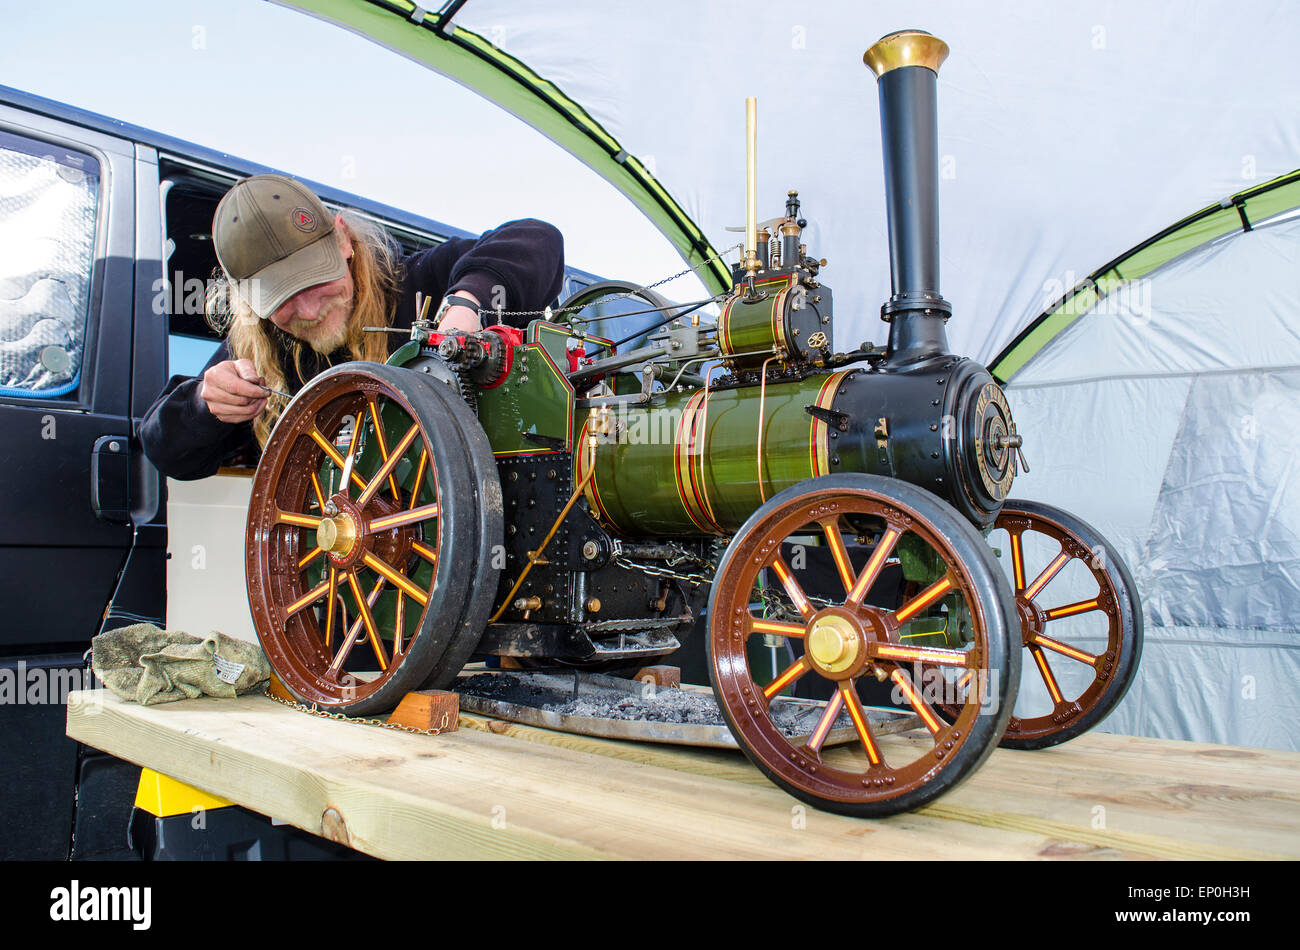 an enthusiast with a miniature steam engine - Stock Image